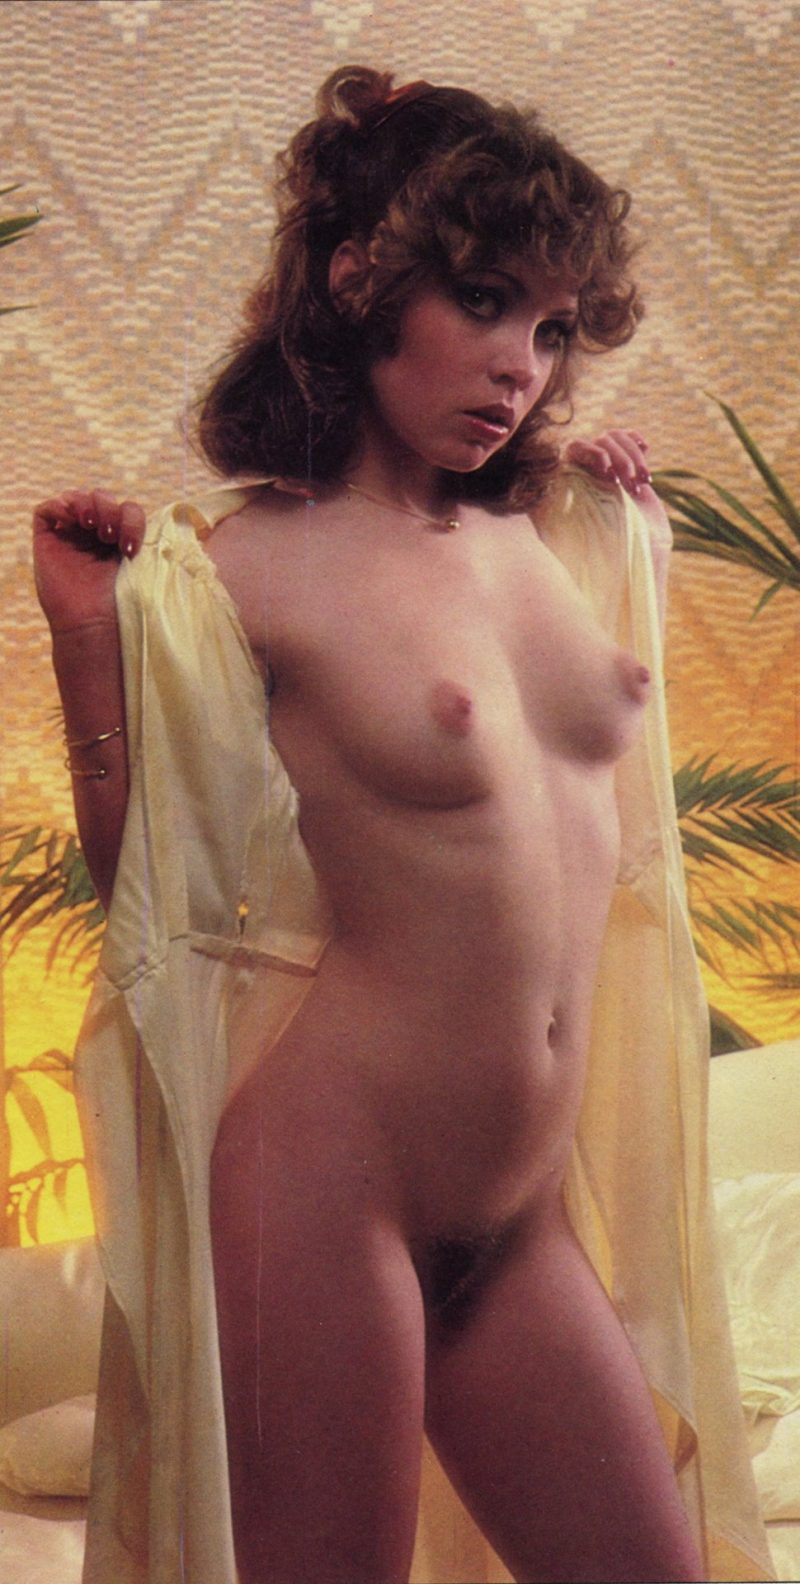 You have vintage junior girls xxx nudist